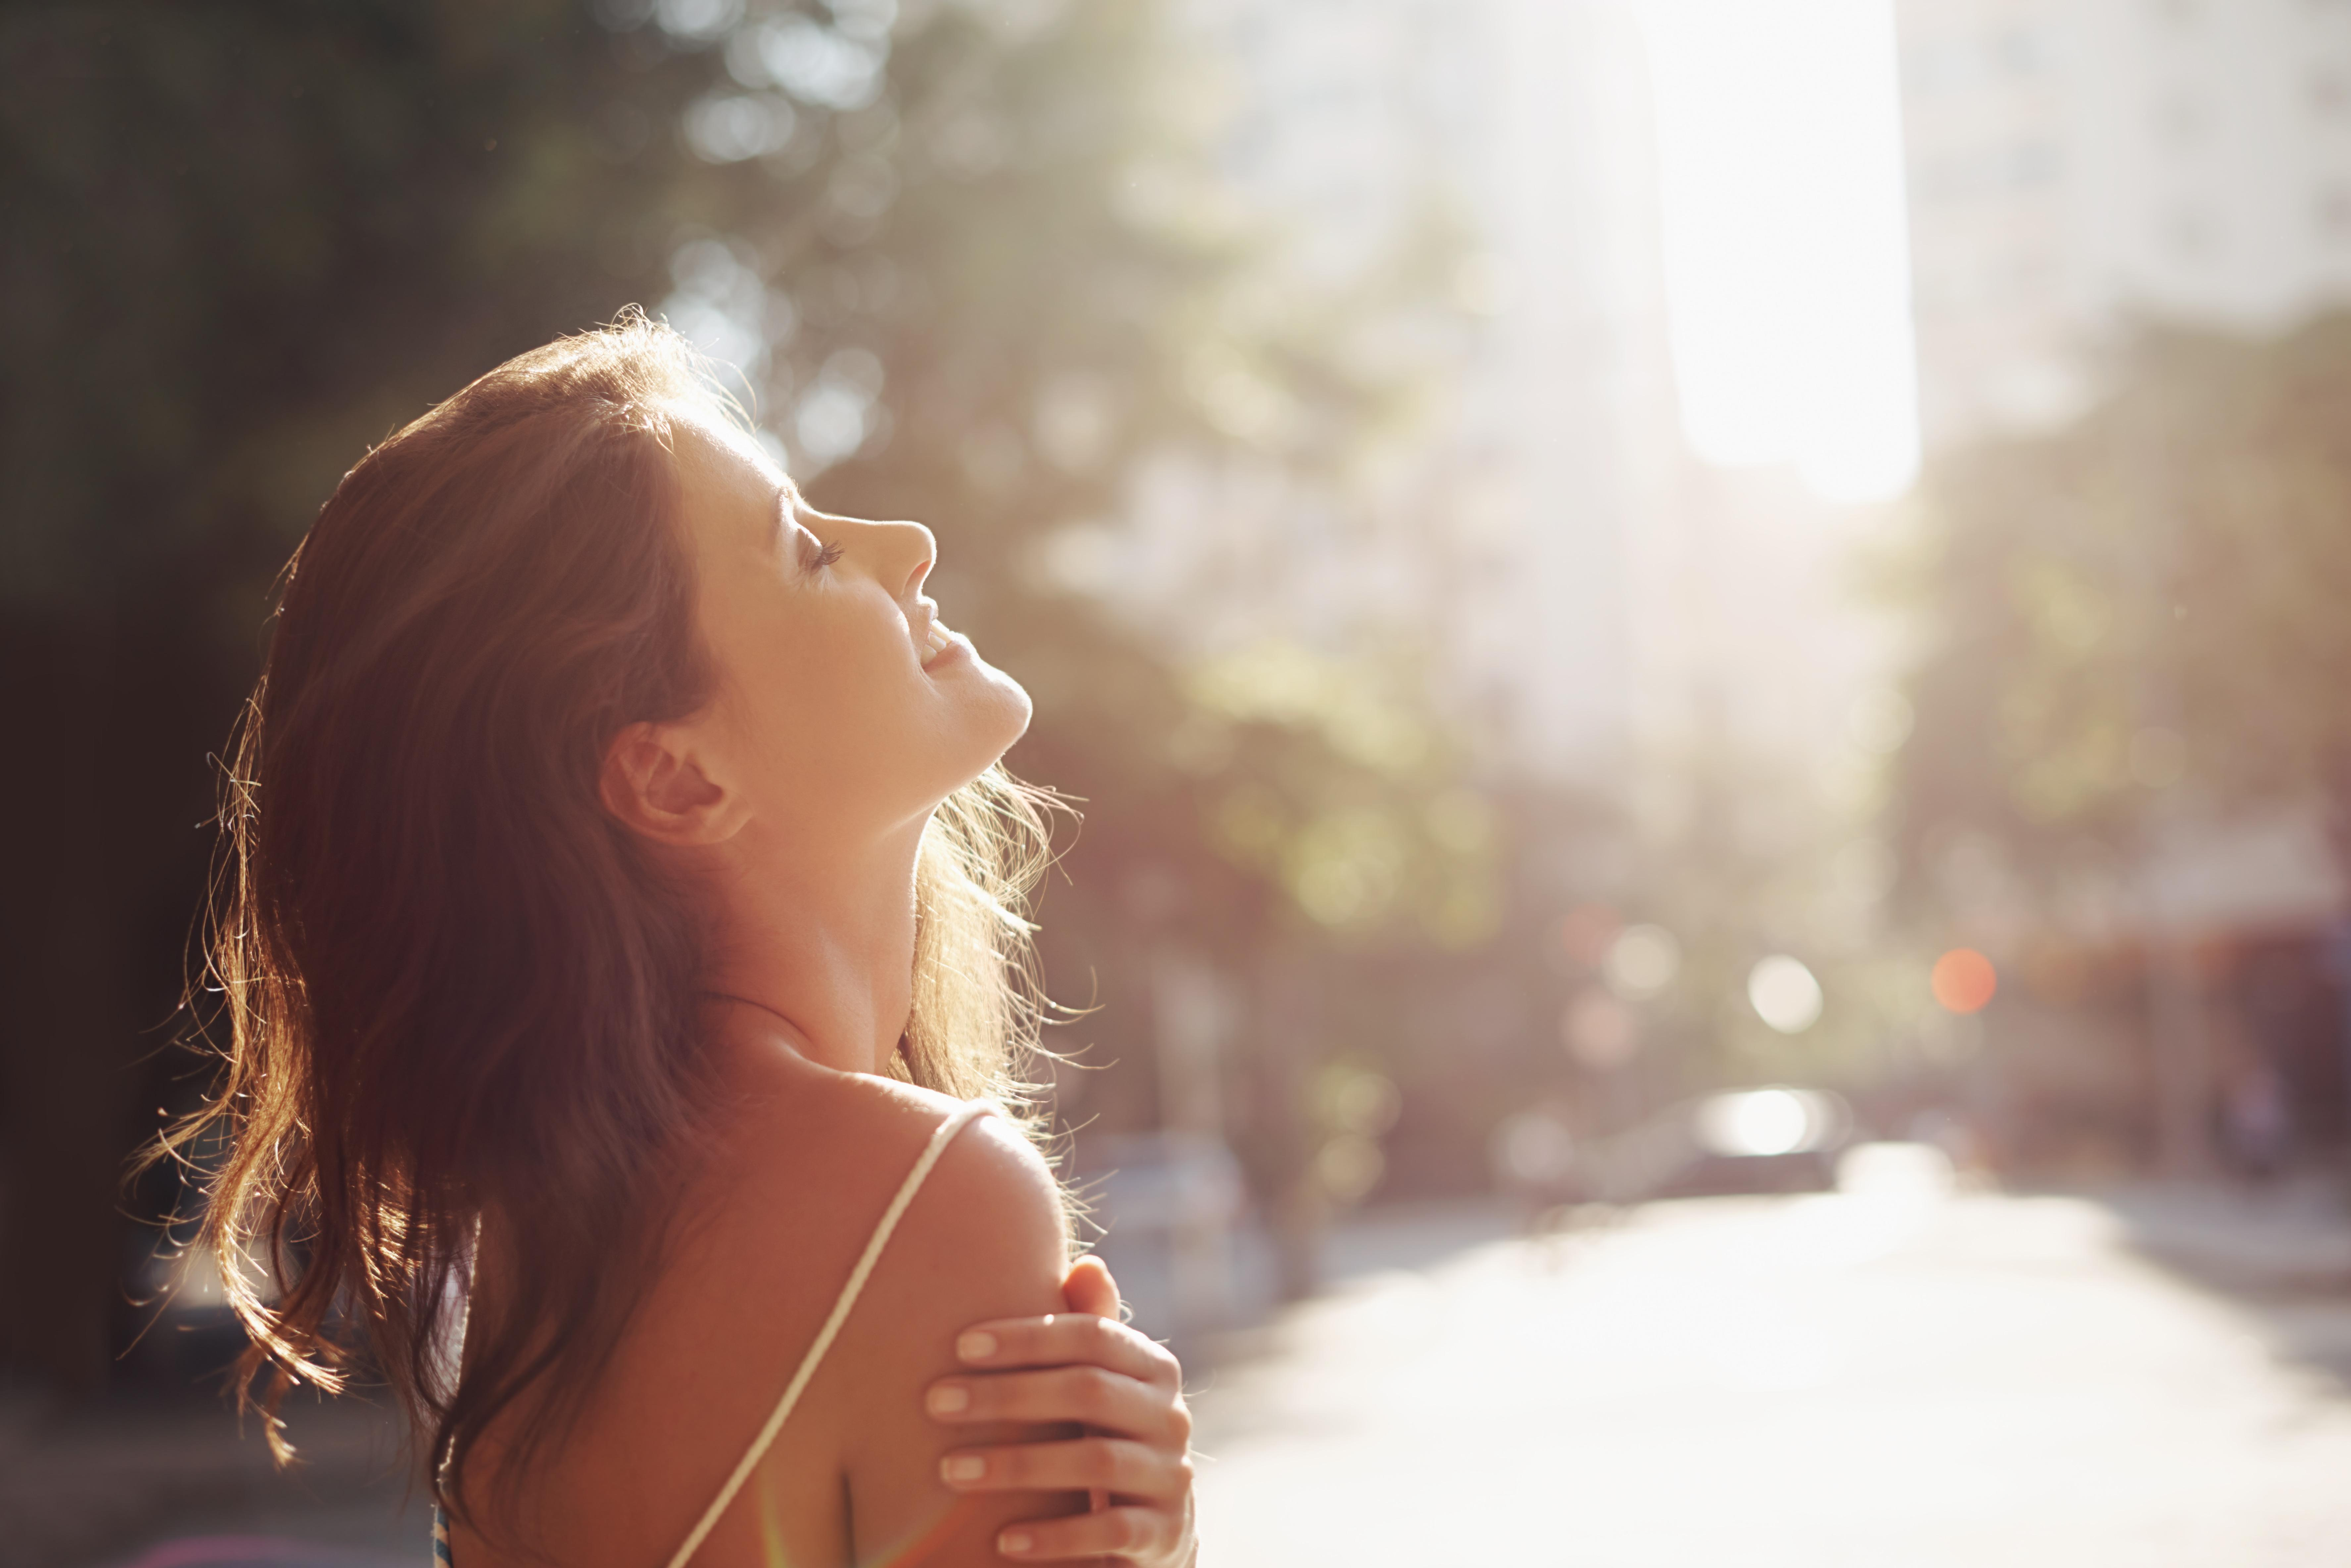 Time in the sun 'slashes cancer risk by half and boosts vitamin D levels'